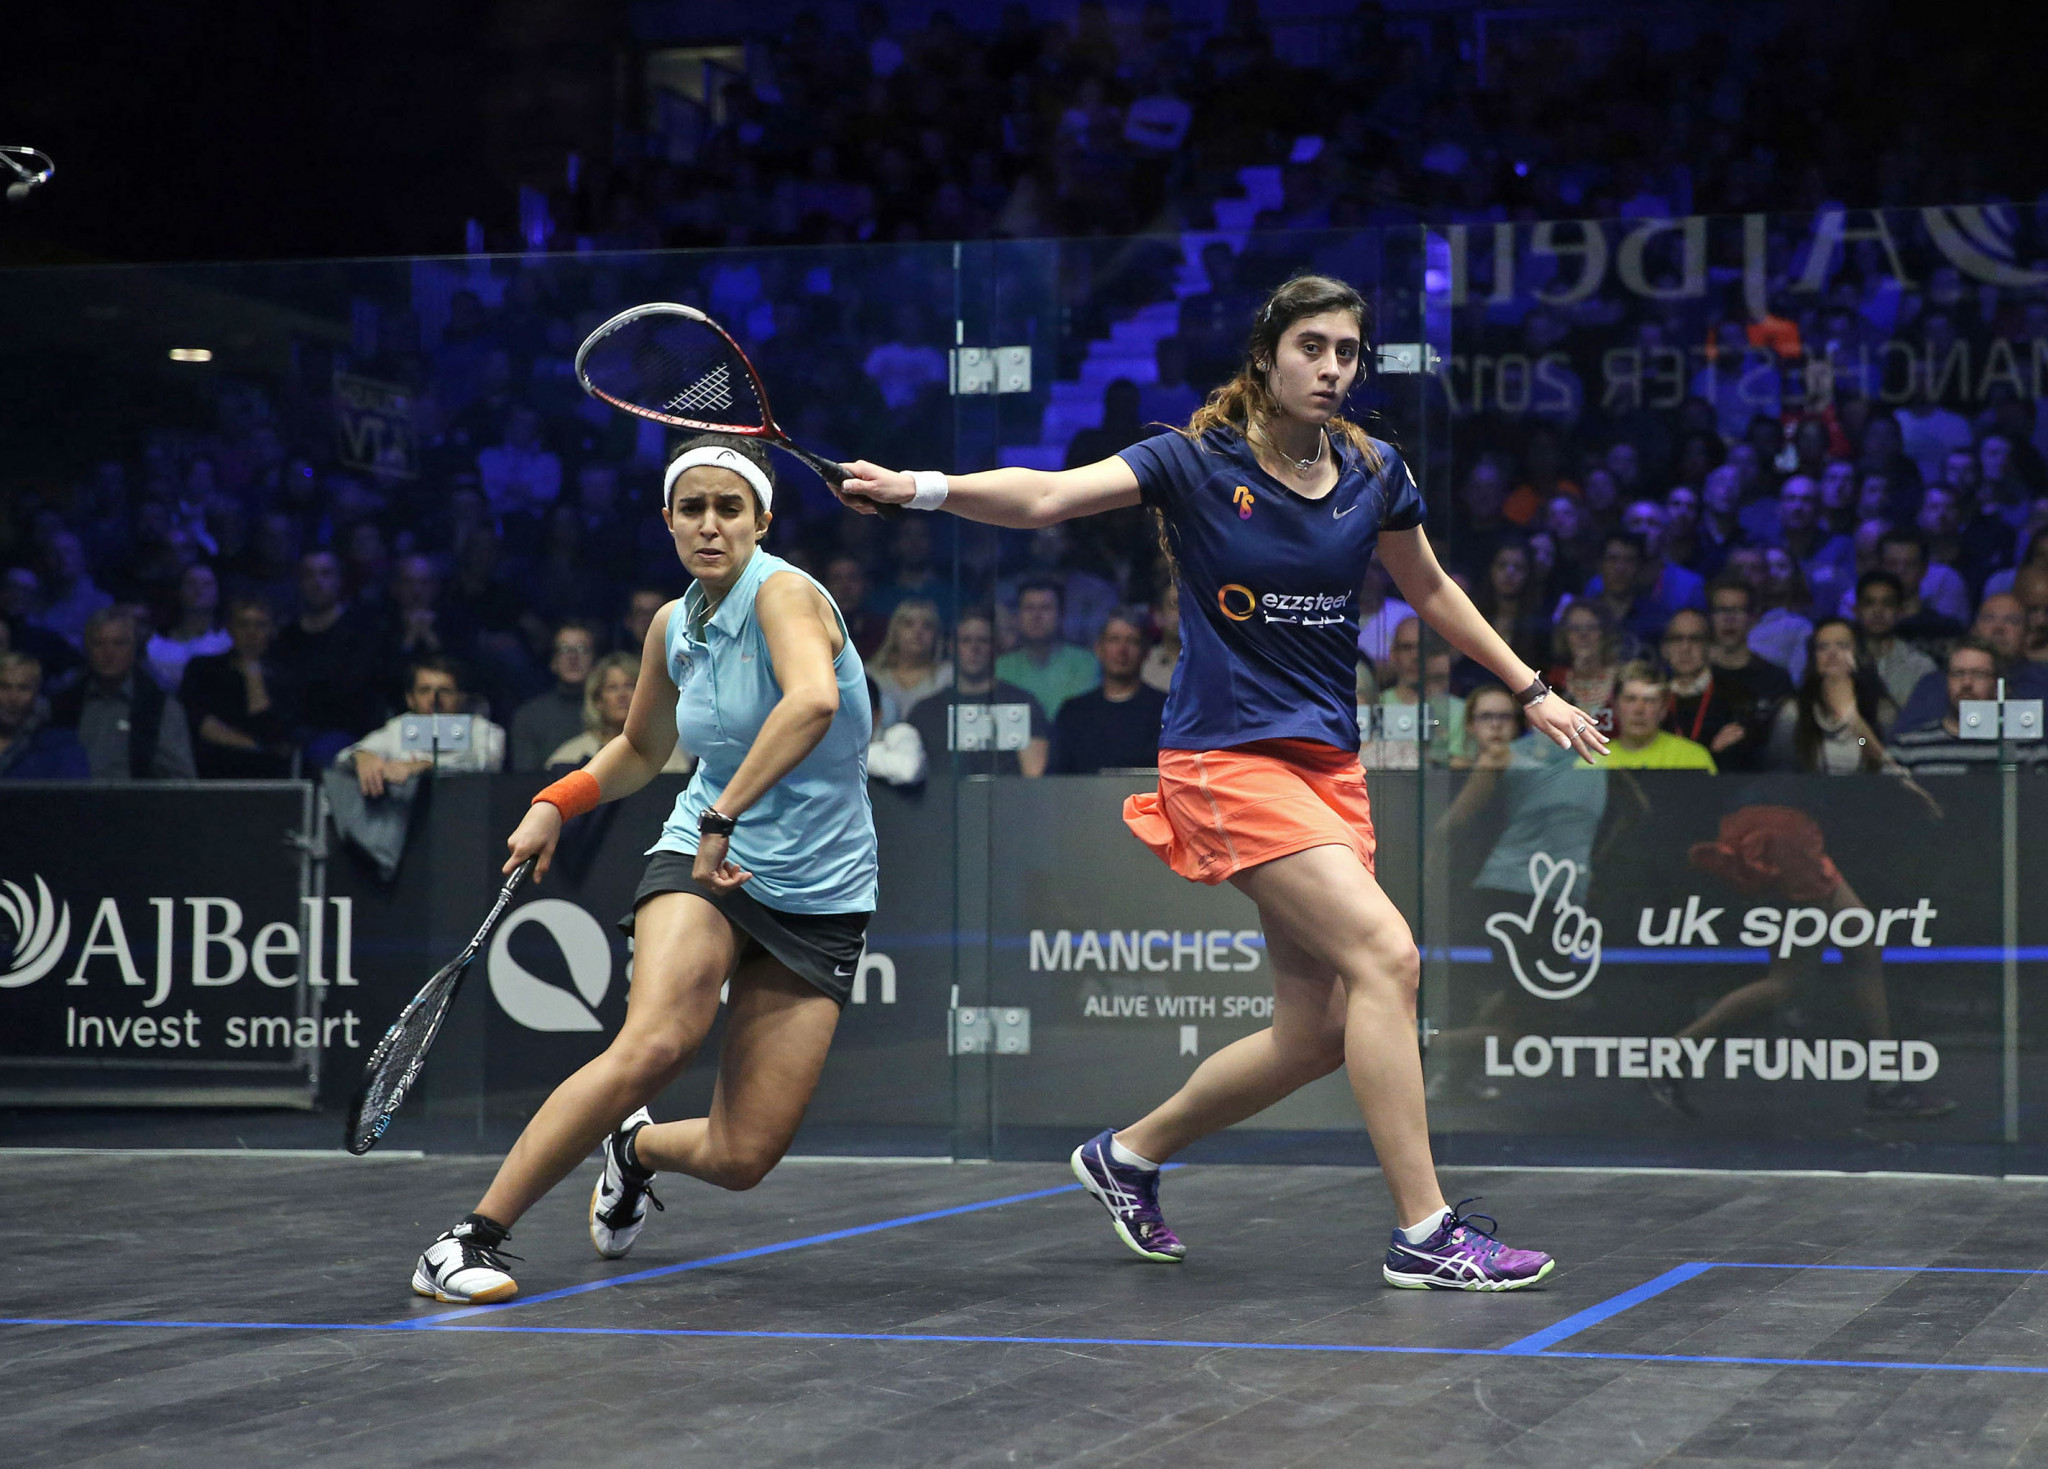 Nour El Sherbini proved too strong for compatriot Nour El Tayeb in the women's semi-finals.